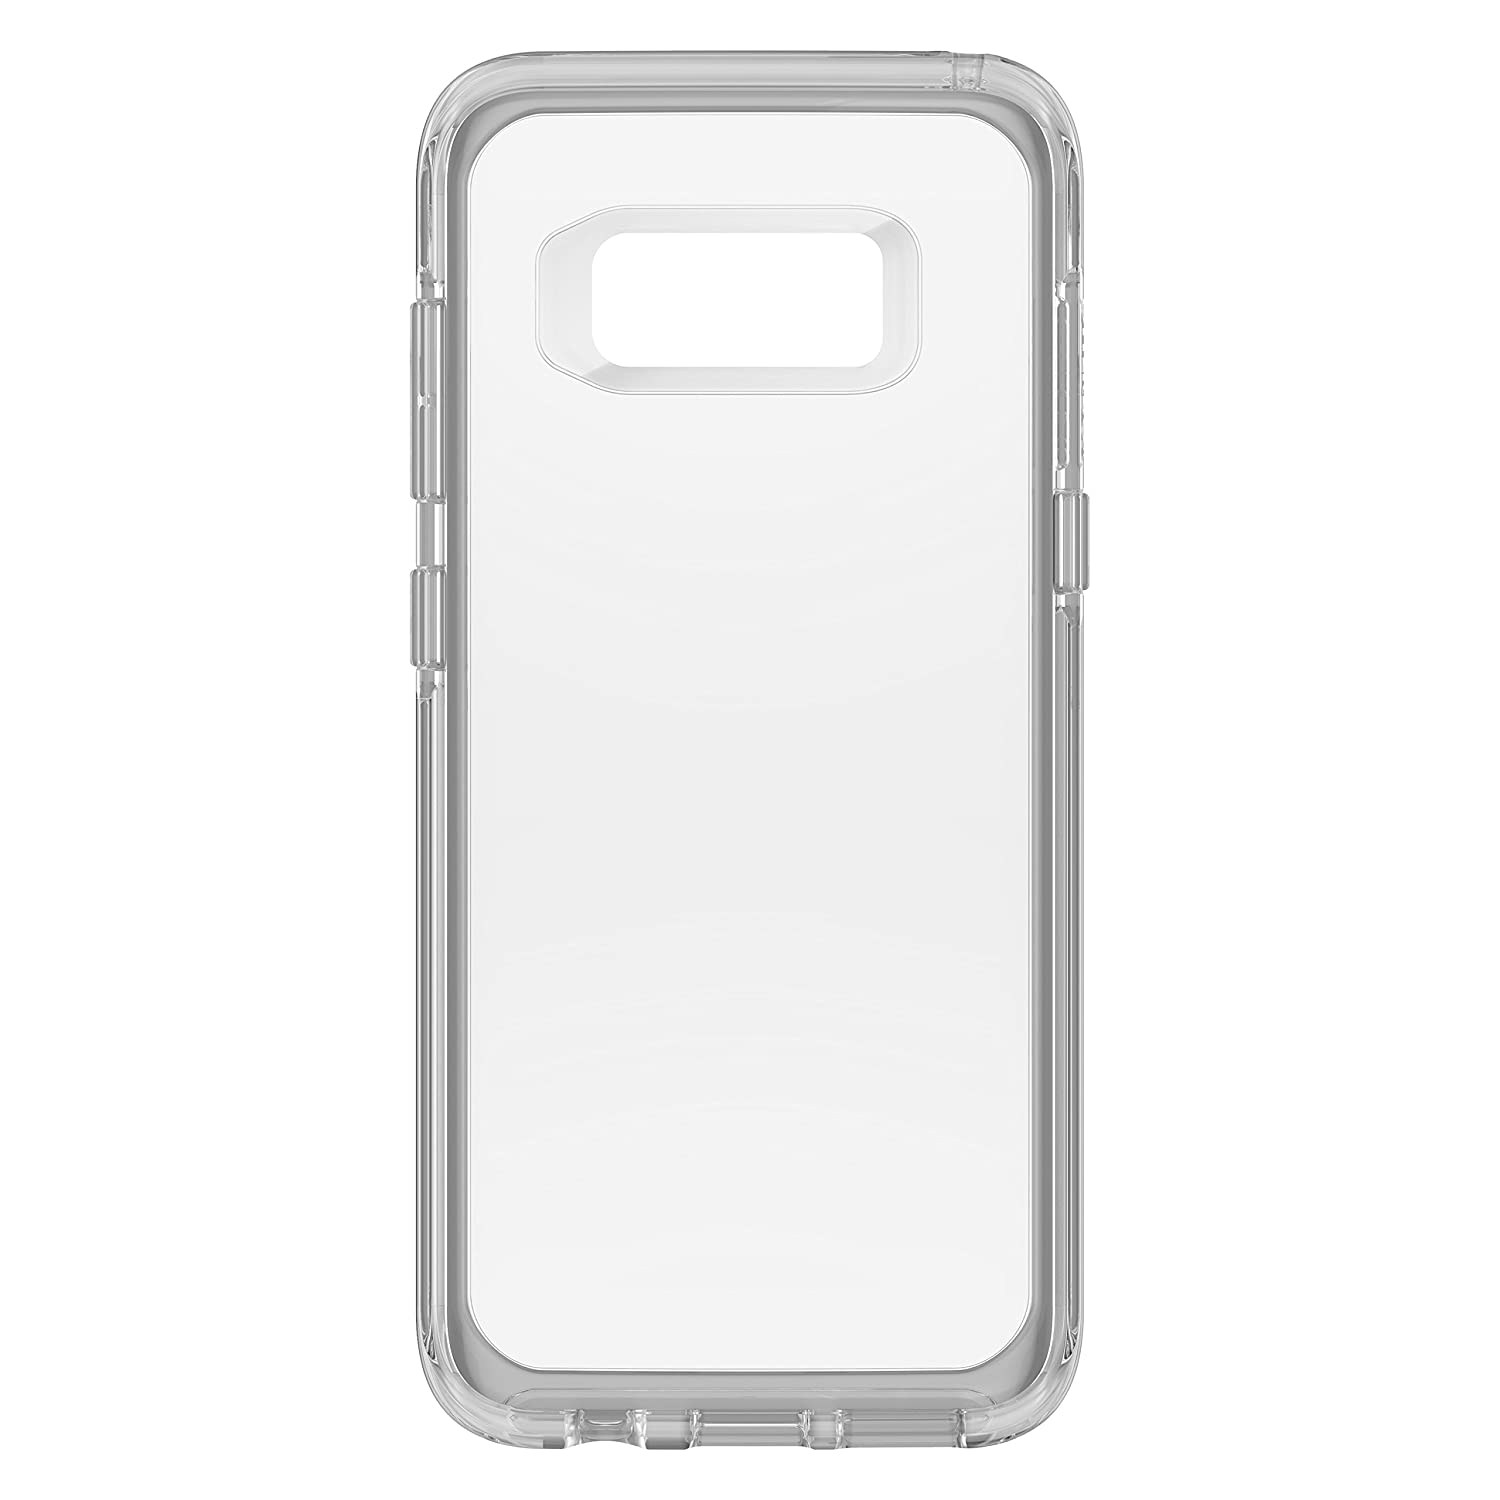 cb38a56ef8 Amazon.com: OtterBox Symmetry Clear Series for Samsung Galaxy S8 -  Frustration Free Packaging - Clear: Cell Phones & Accessories